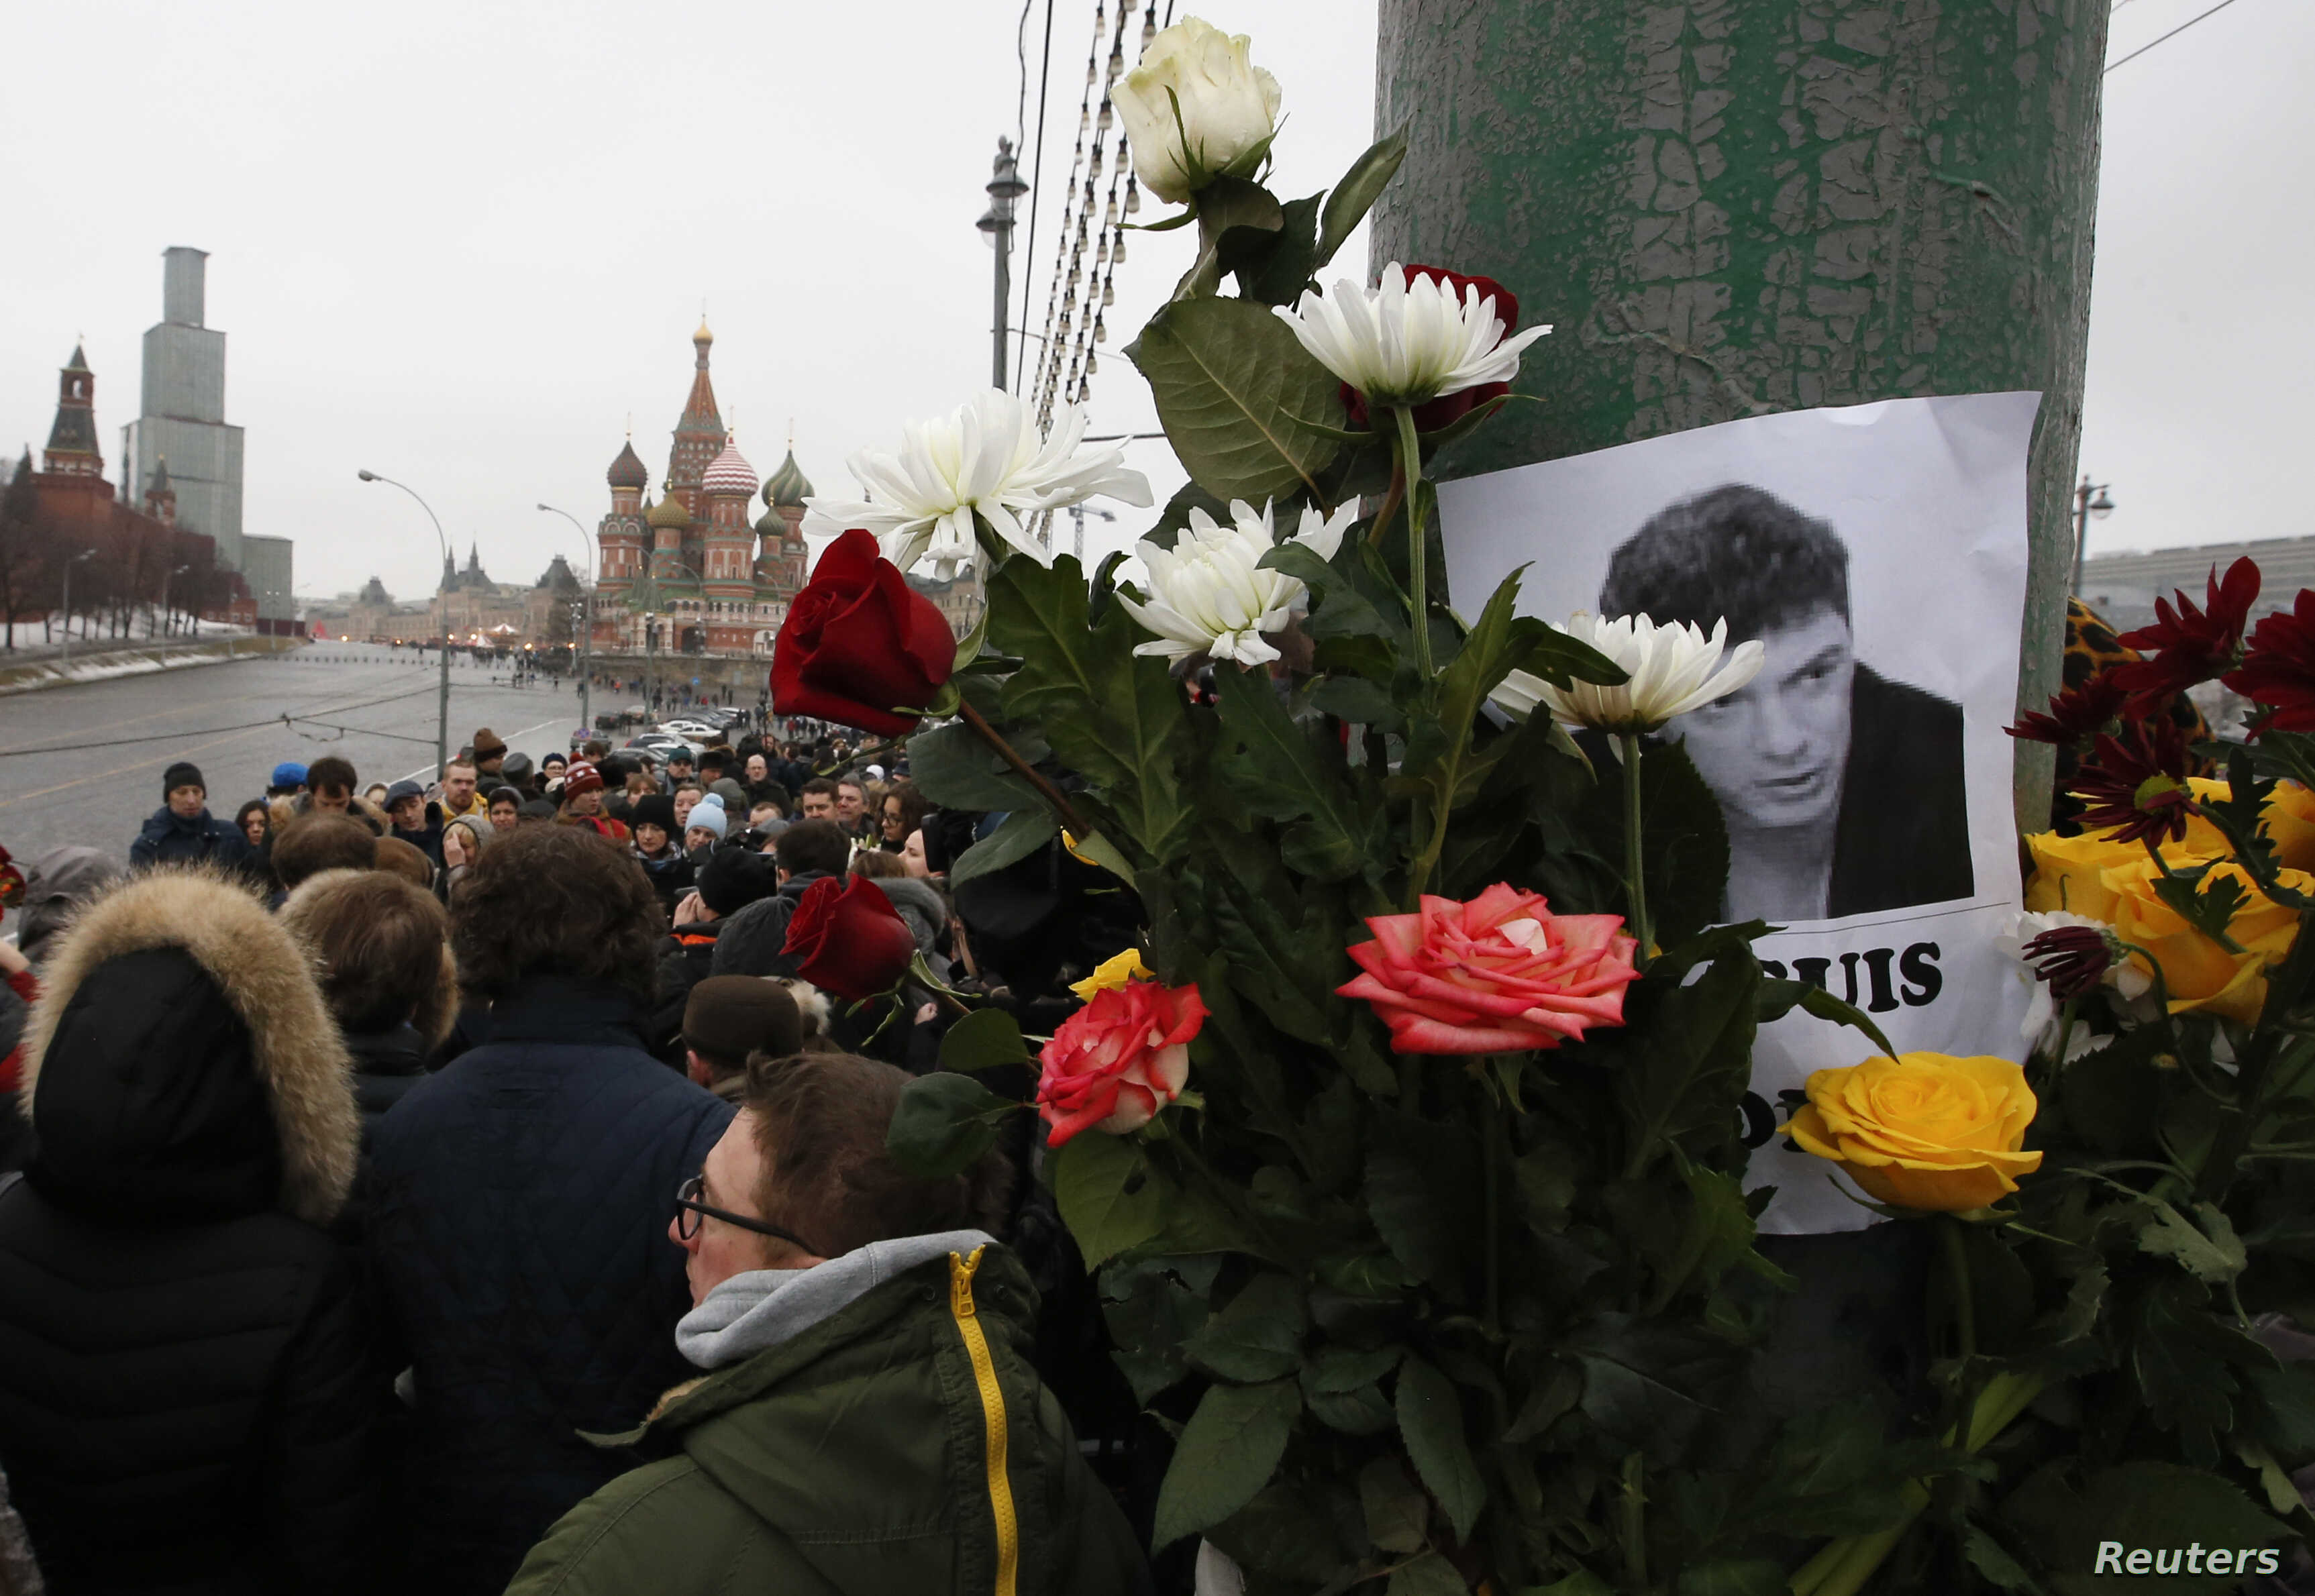 People gather at the site where Boris Nemtsov was recently murdered, with St. Basil's Cathedral and the Kremlin seen in the background, in central Moscow, February 28, 2015. Russia's Investigative Committee is pursuing several lines on inquiry follow...